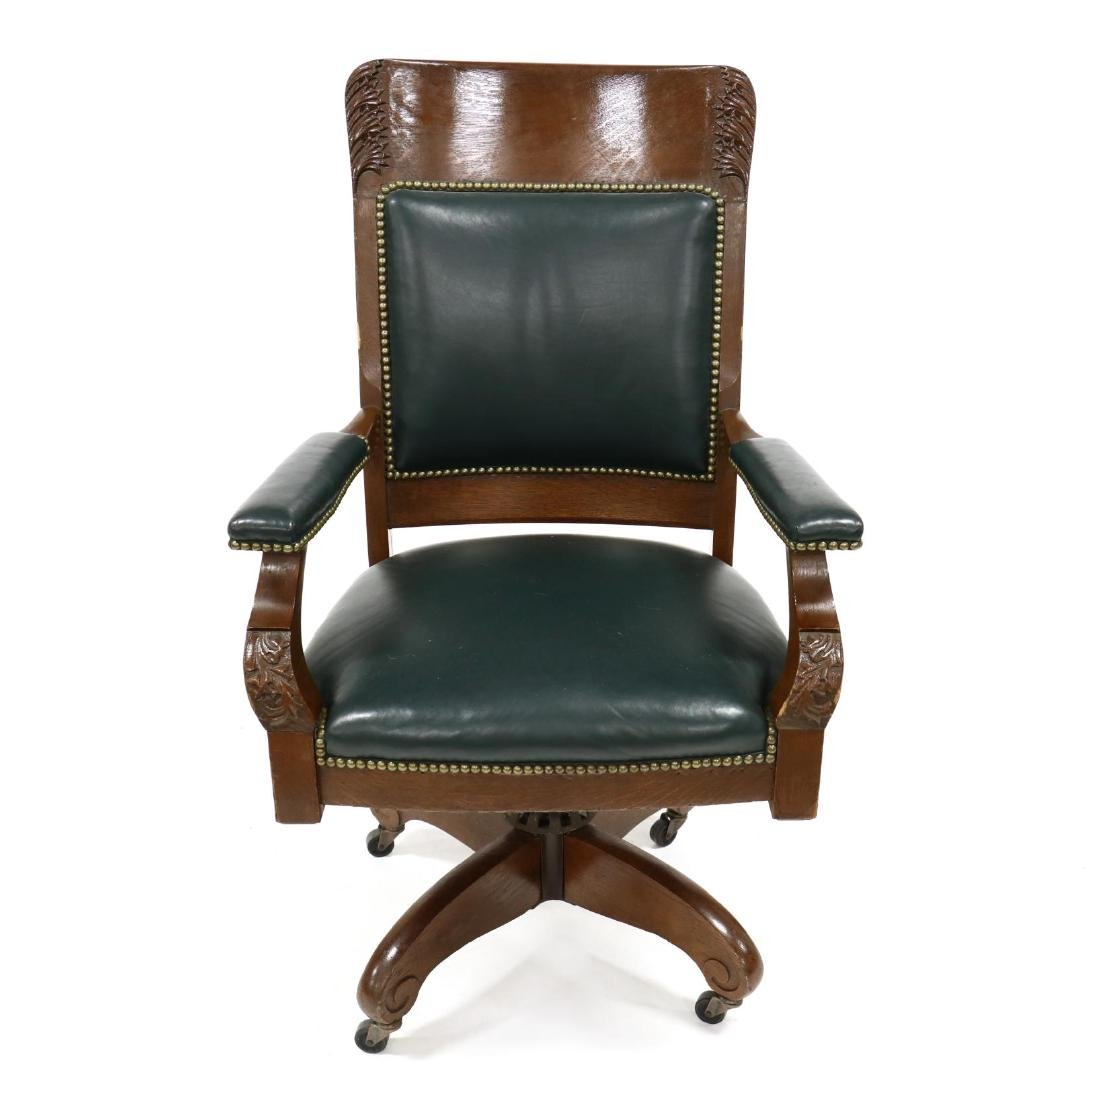 Edwardian Carved Oak and Leather Office Chair - 2